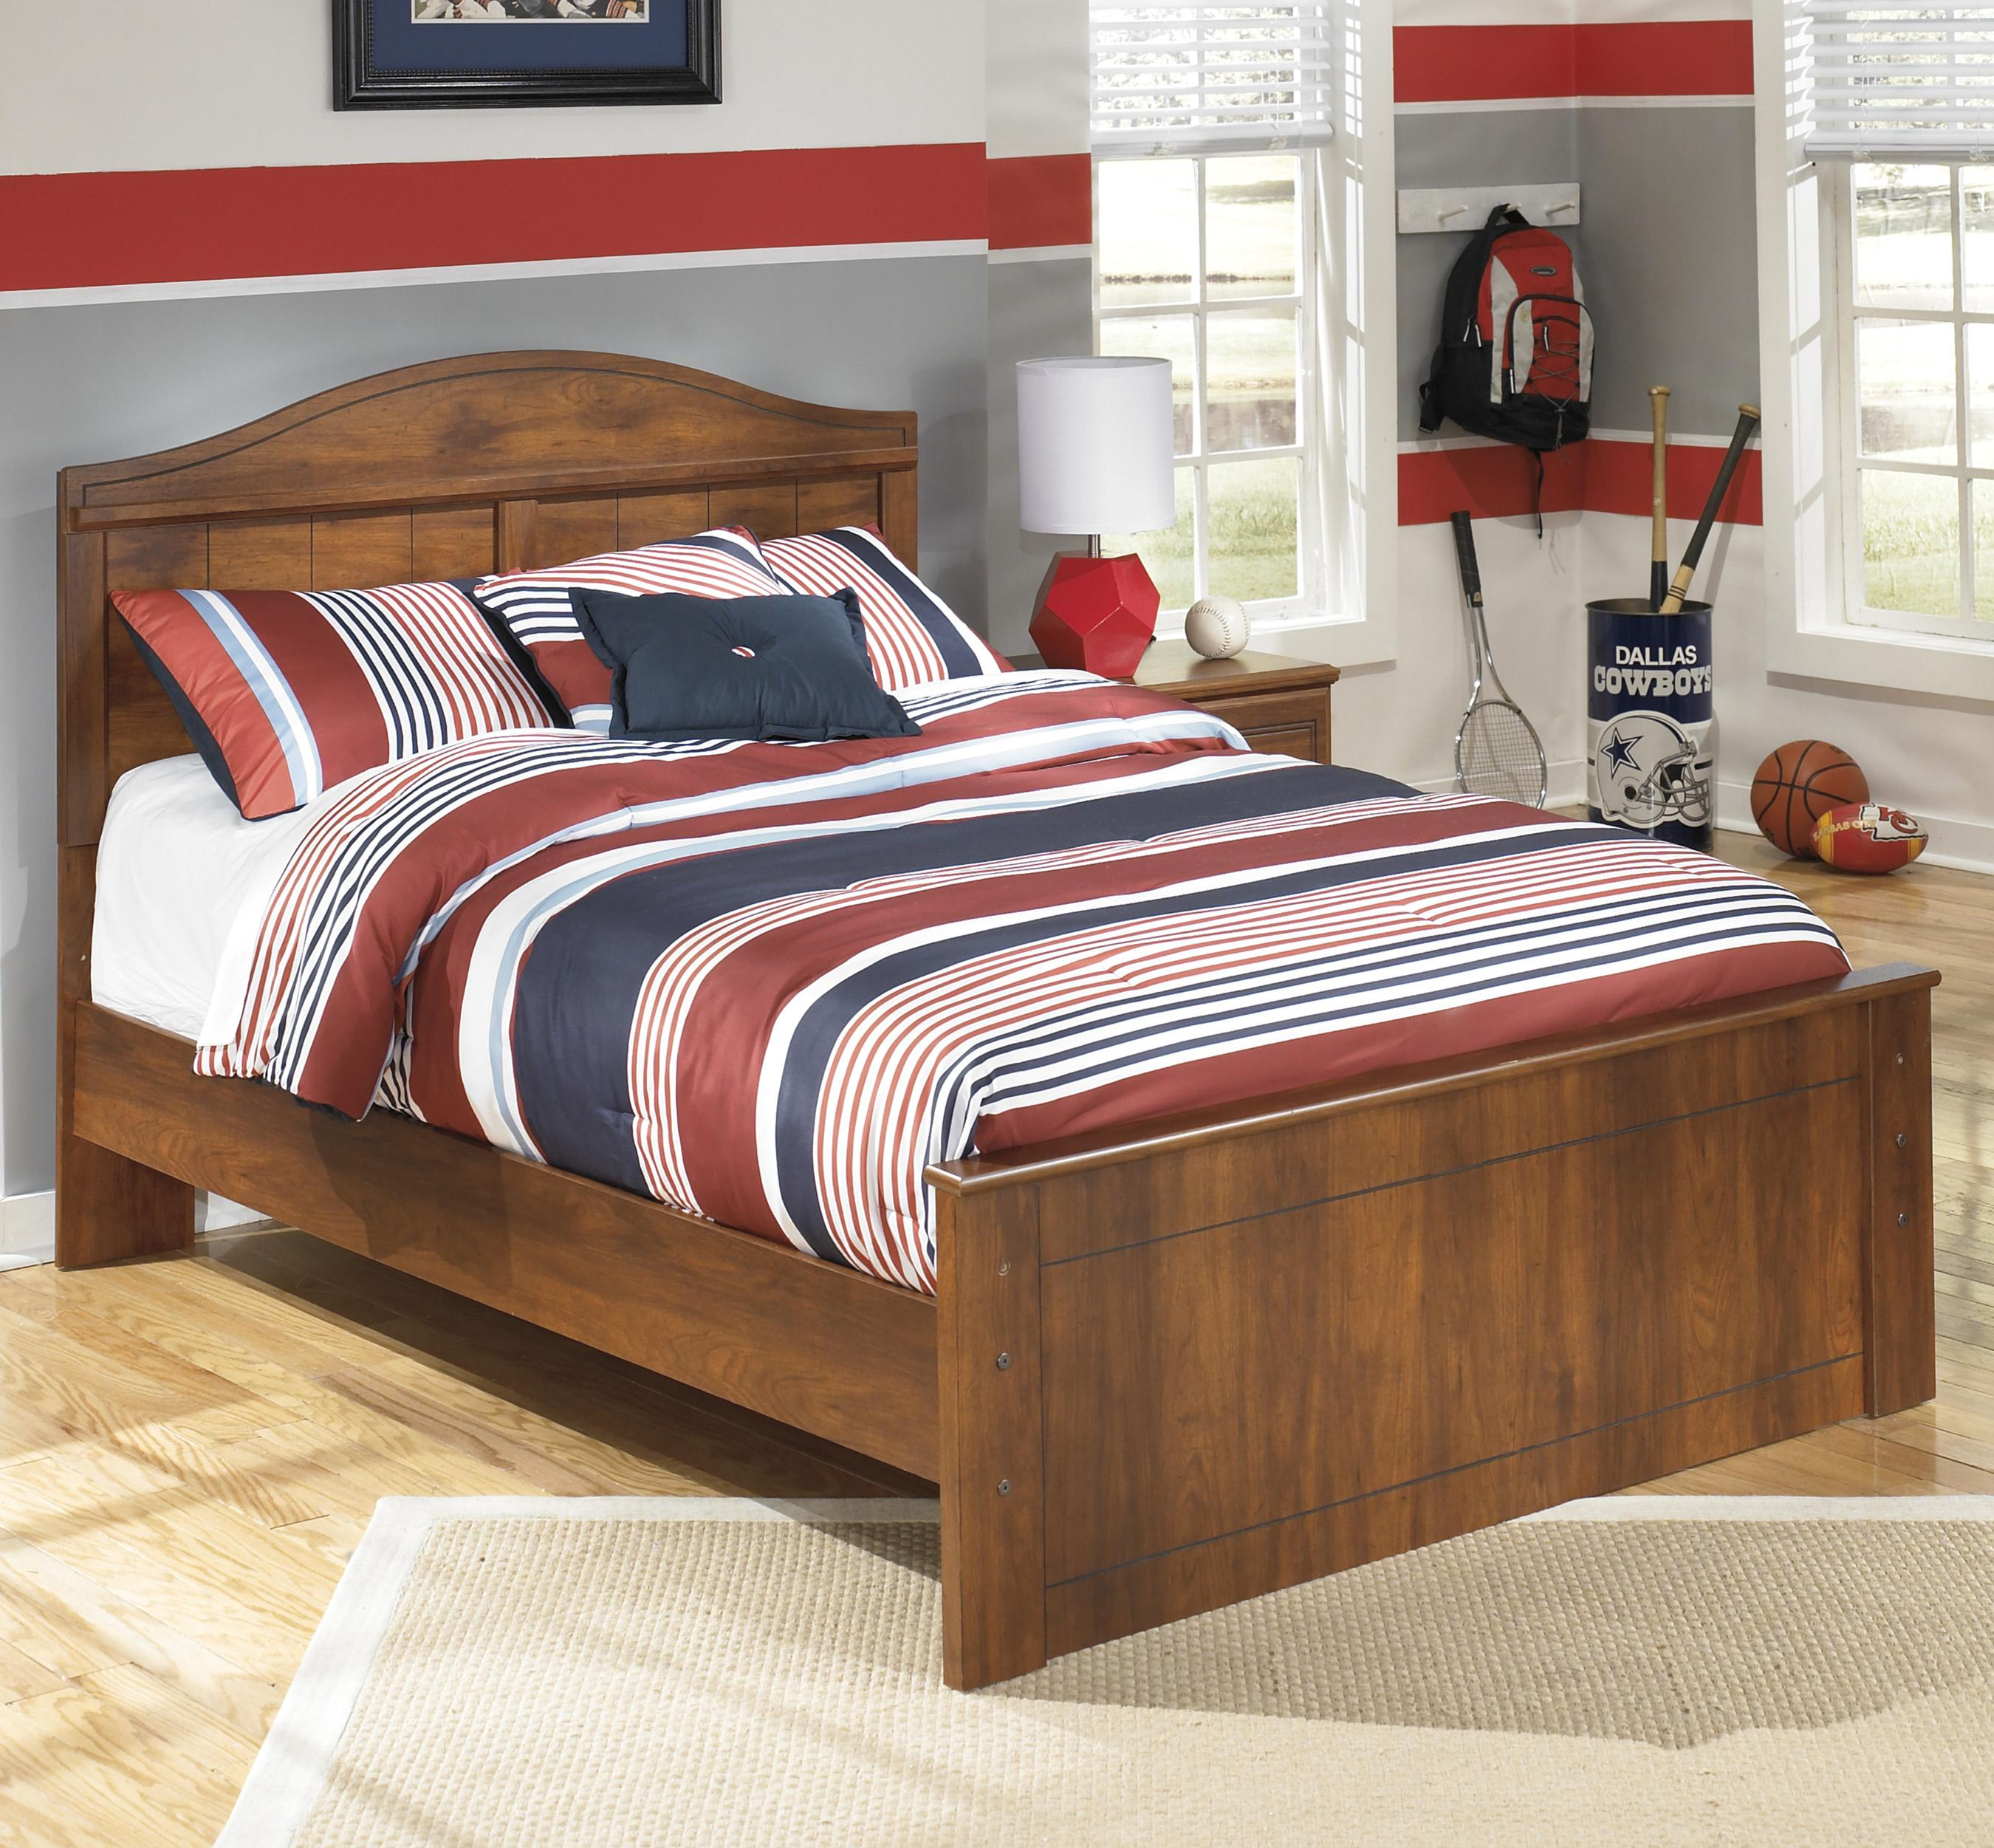 Barchan Full Panel Bed by Signature Design by Ashley at Zak's Warehouse Clearance Center